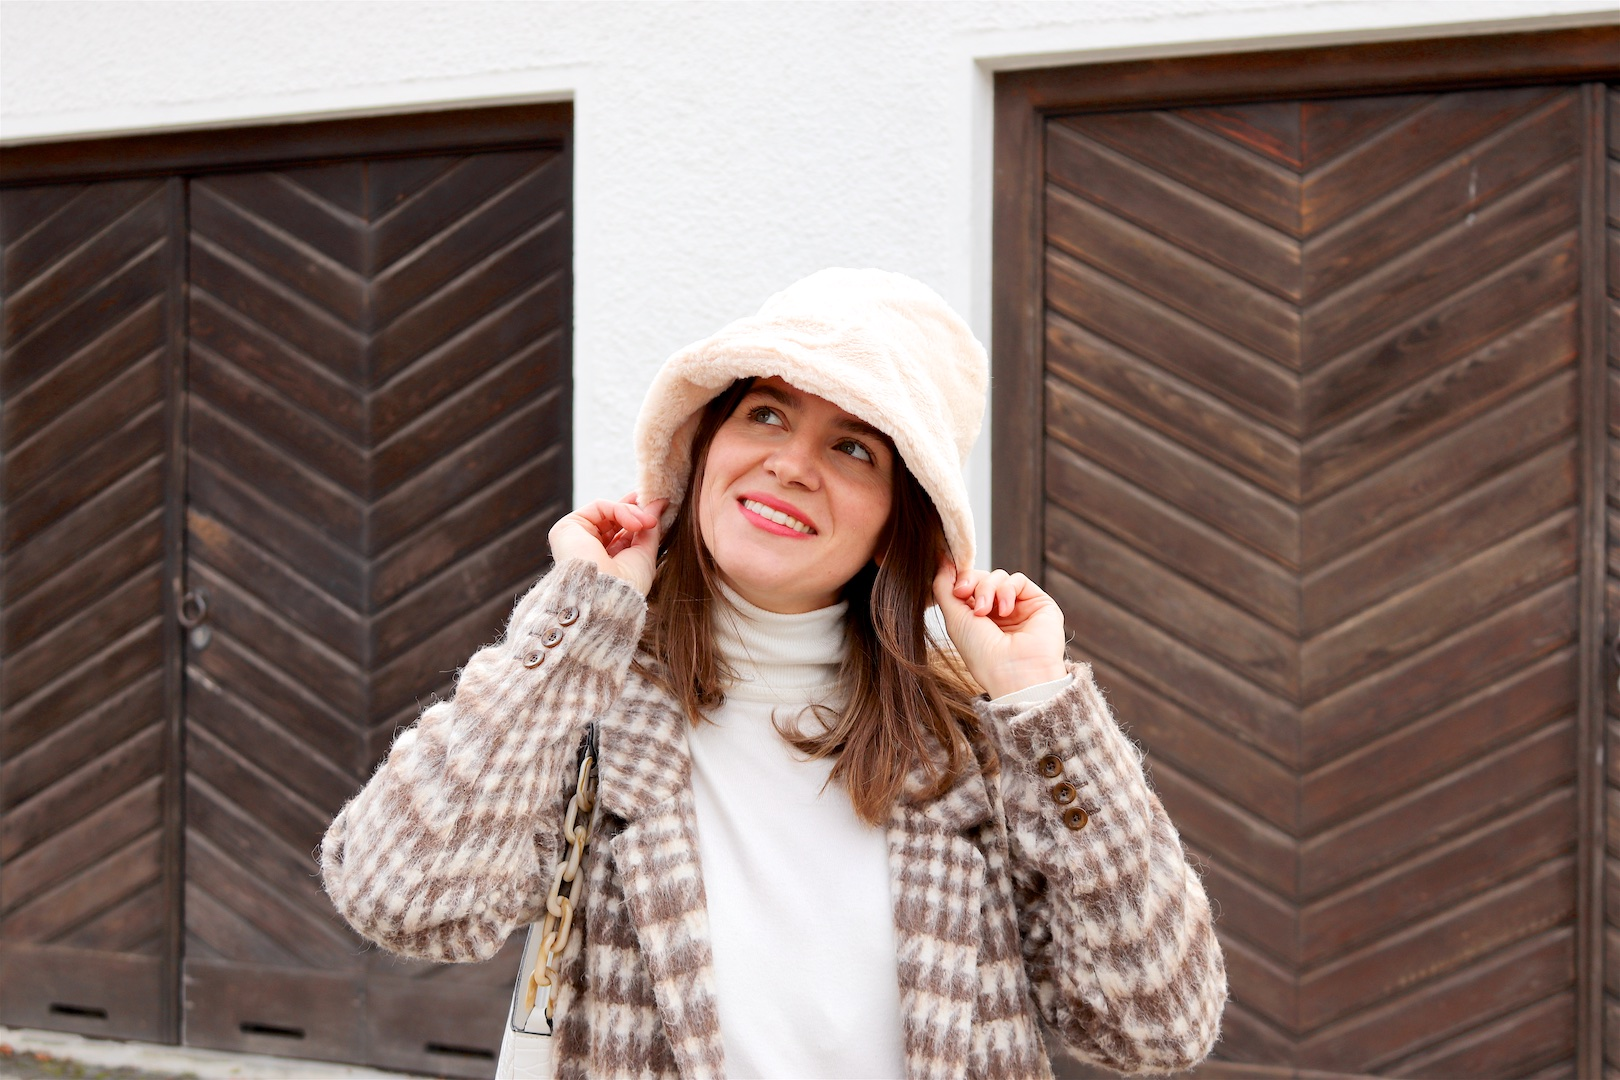 Faux Fur Bucket Hat. Fashion and Style Blog Girl from Heartfelt Hunt. Girl with blonde hair wearing a faux fur bucket hat, plaid blazer, white turtleneck, mom jeans, white bag and faux fur sneakers.